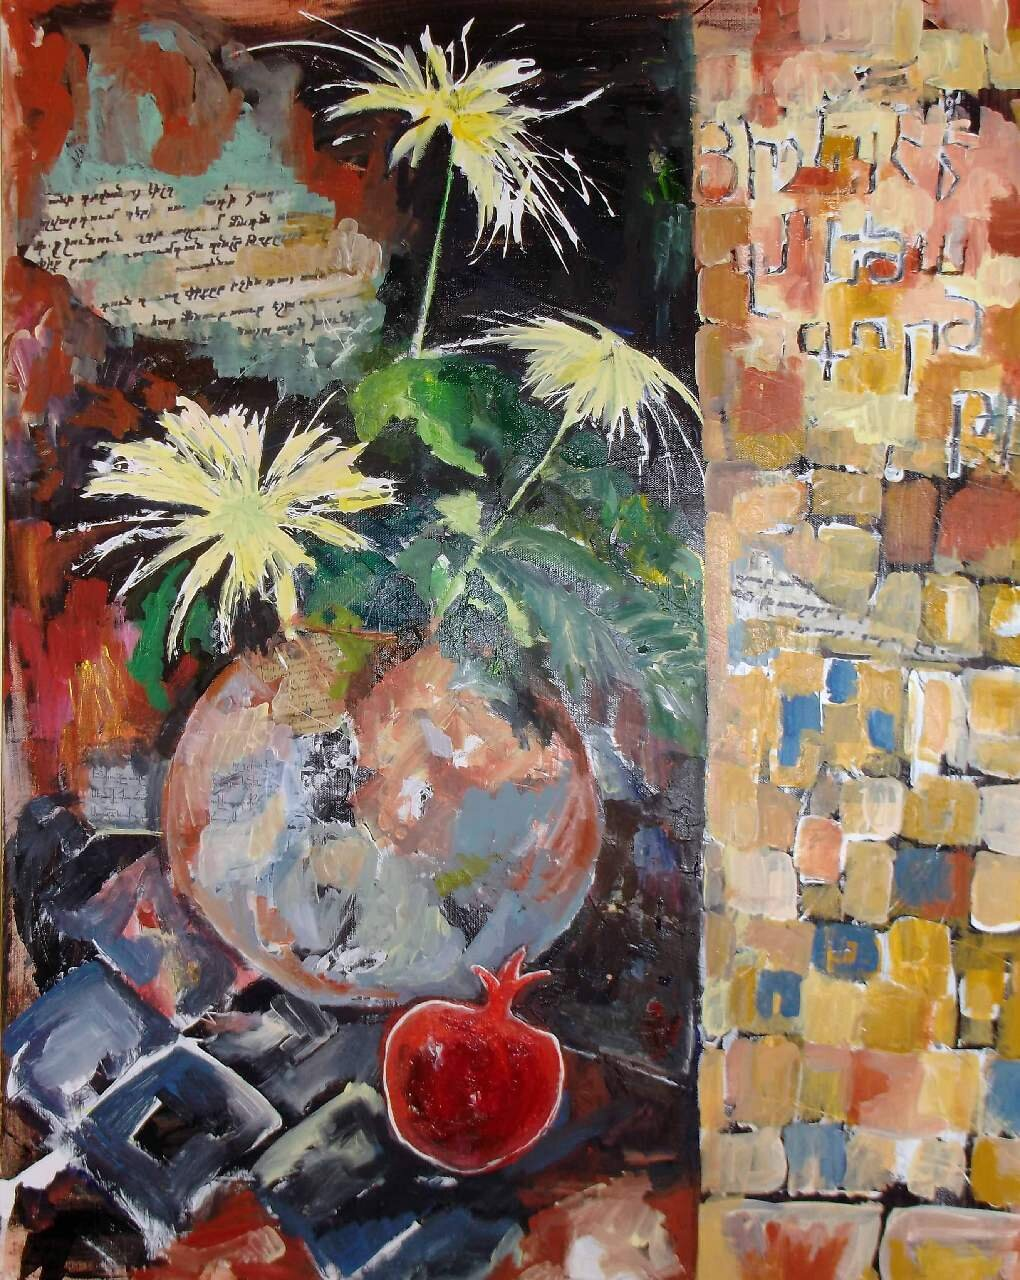 10 Reflection from Yesterday No 1  Mixed-media on canvas.jpg